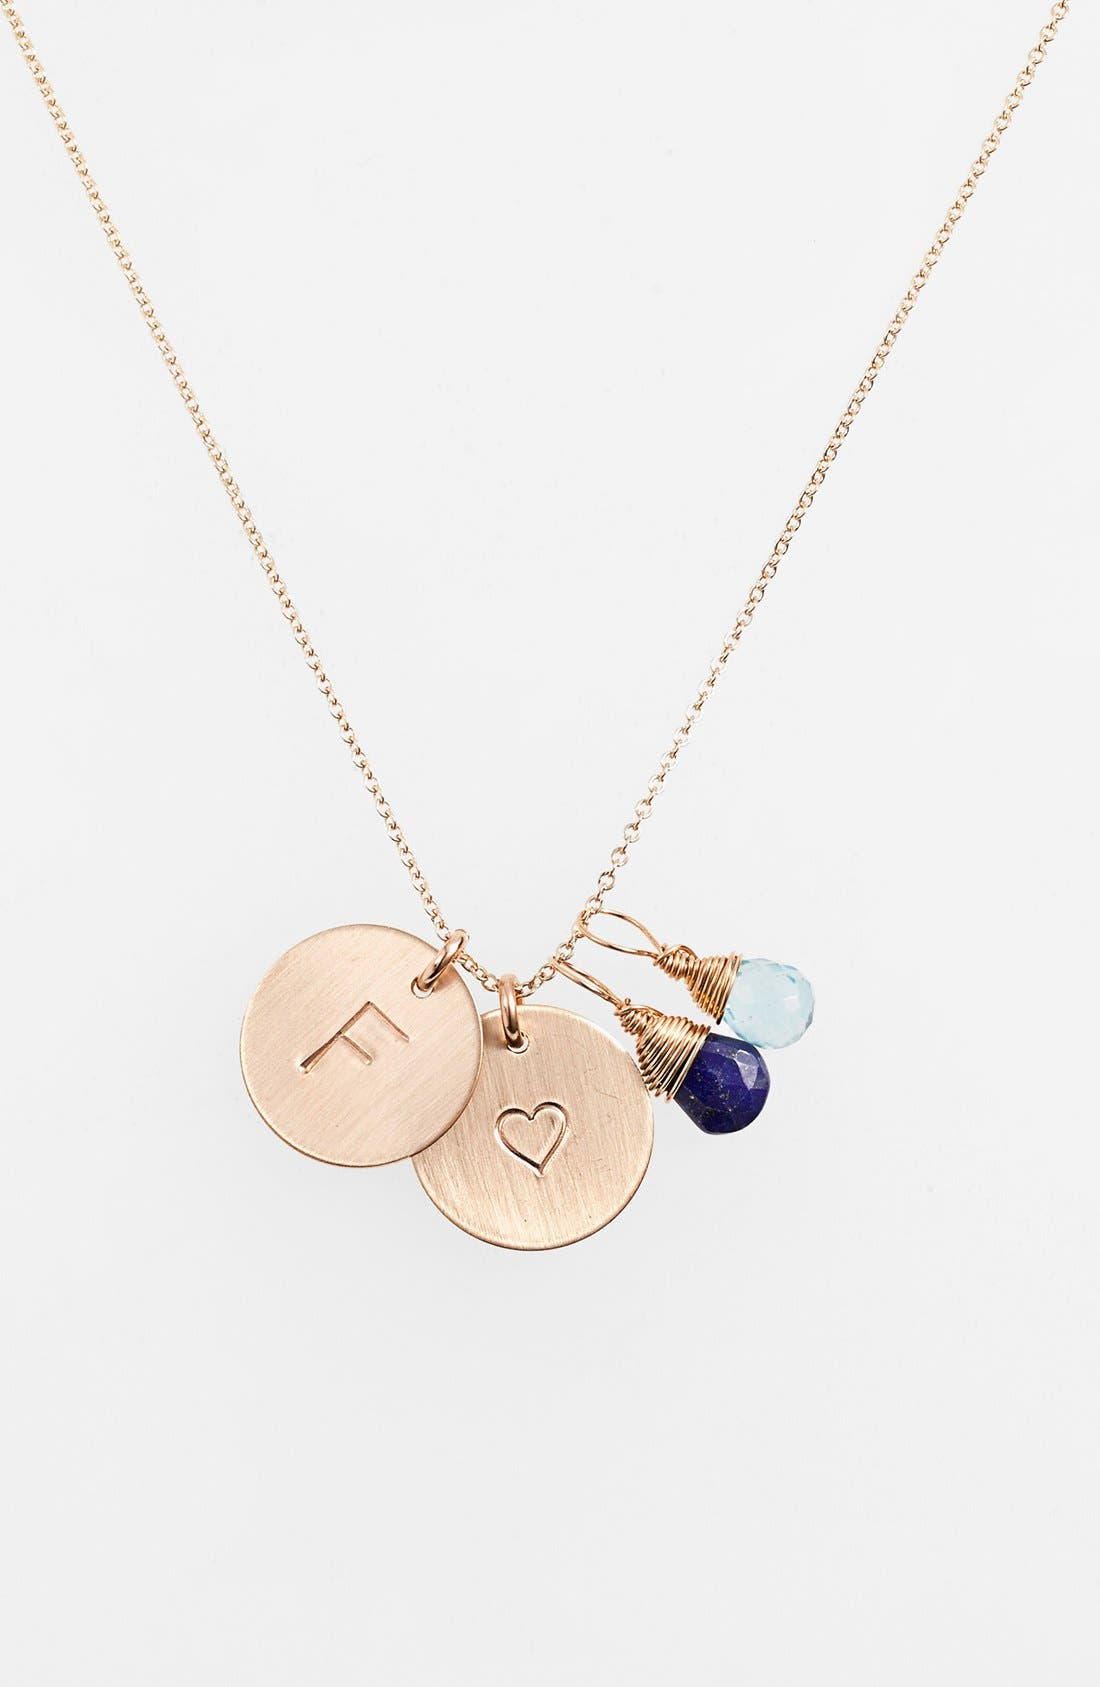 Blue Quartz Initial & Heart 14k-Gold Fill Disc Necklace,                         Main,                         color, Royal Blue And Ocean Blue F